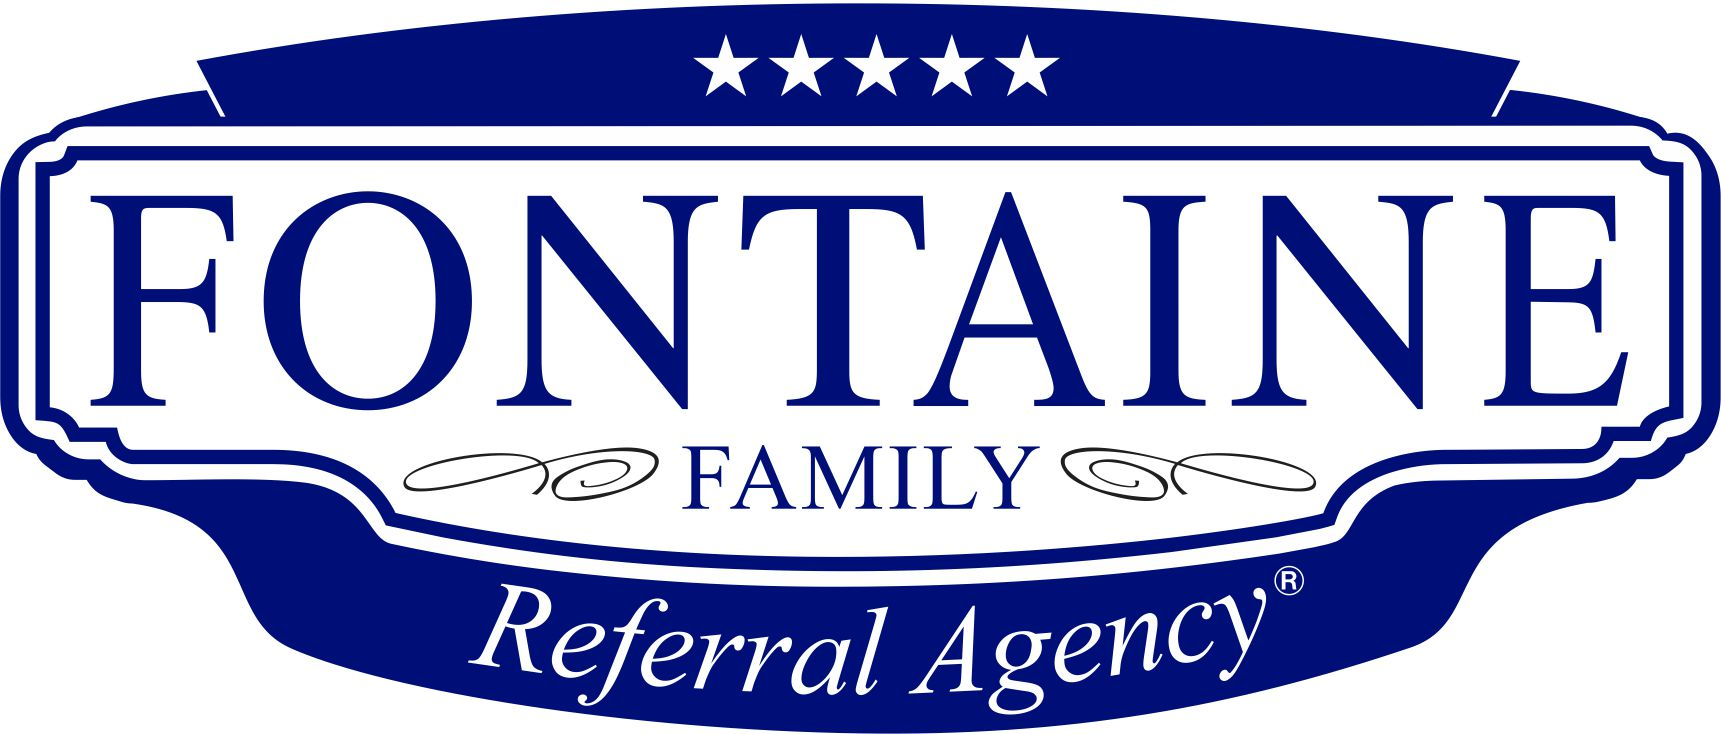 Fontaine Referral Agency | Maine's Referral Network for Retired Realtors